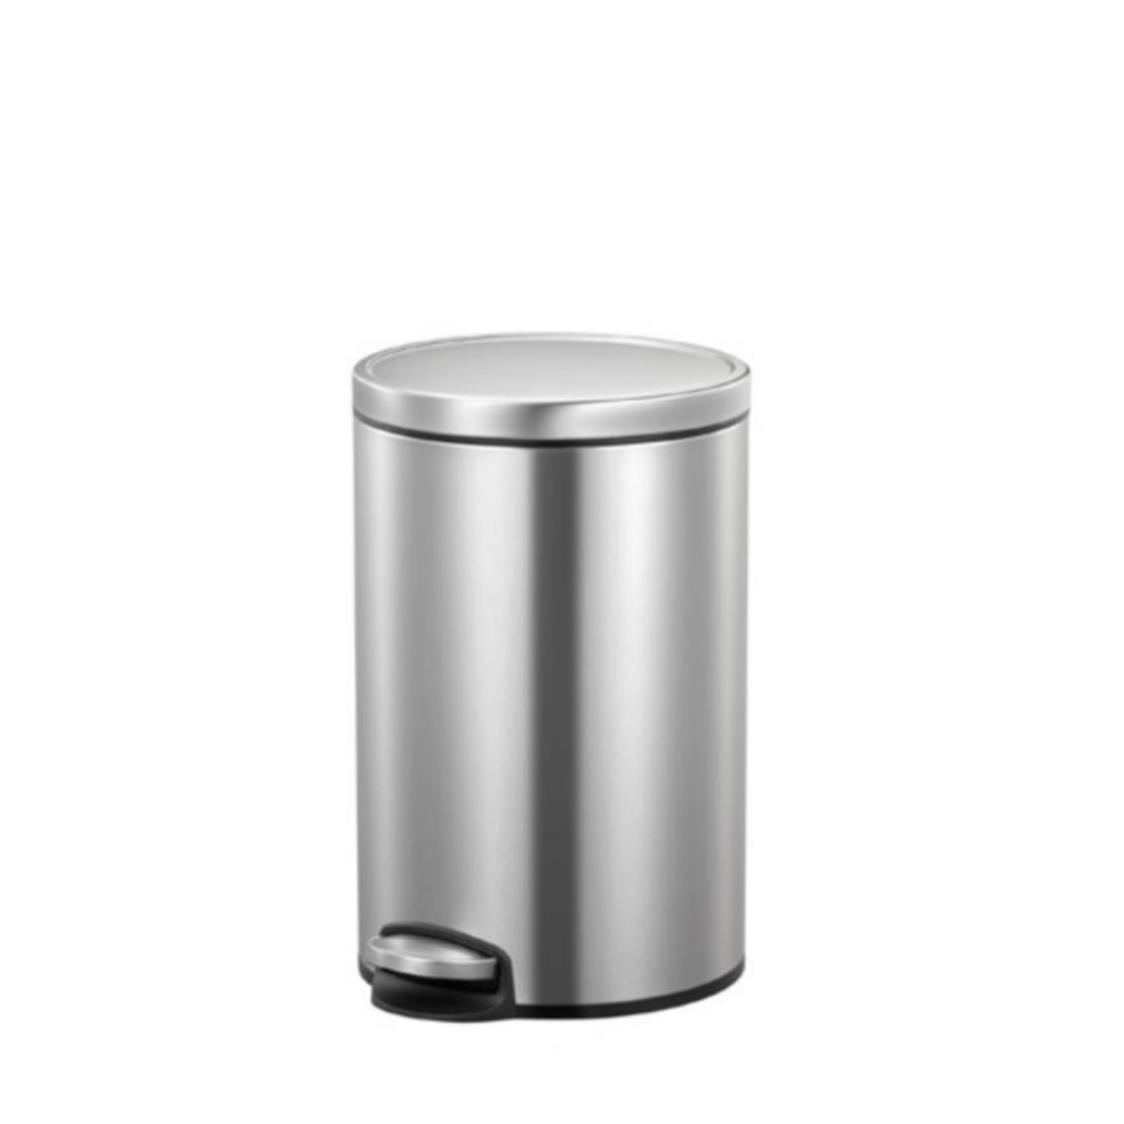 Step Bin With Soft Closing Lid